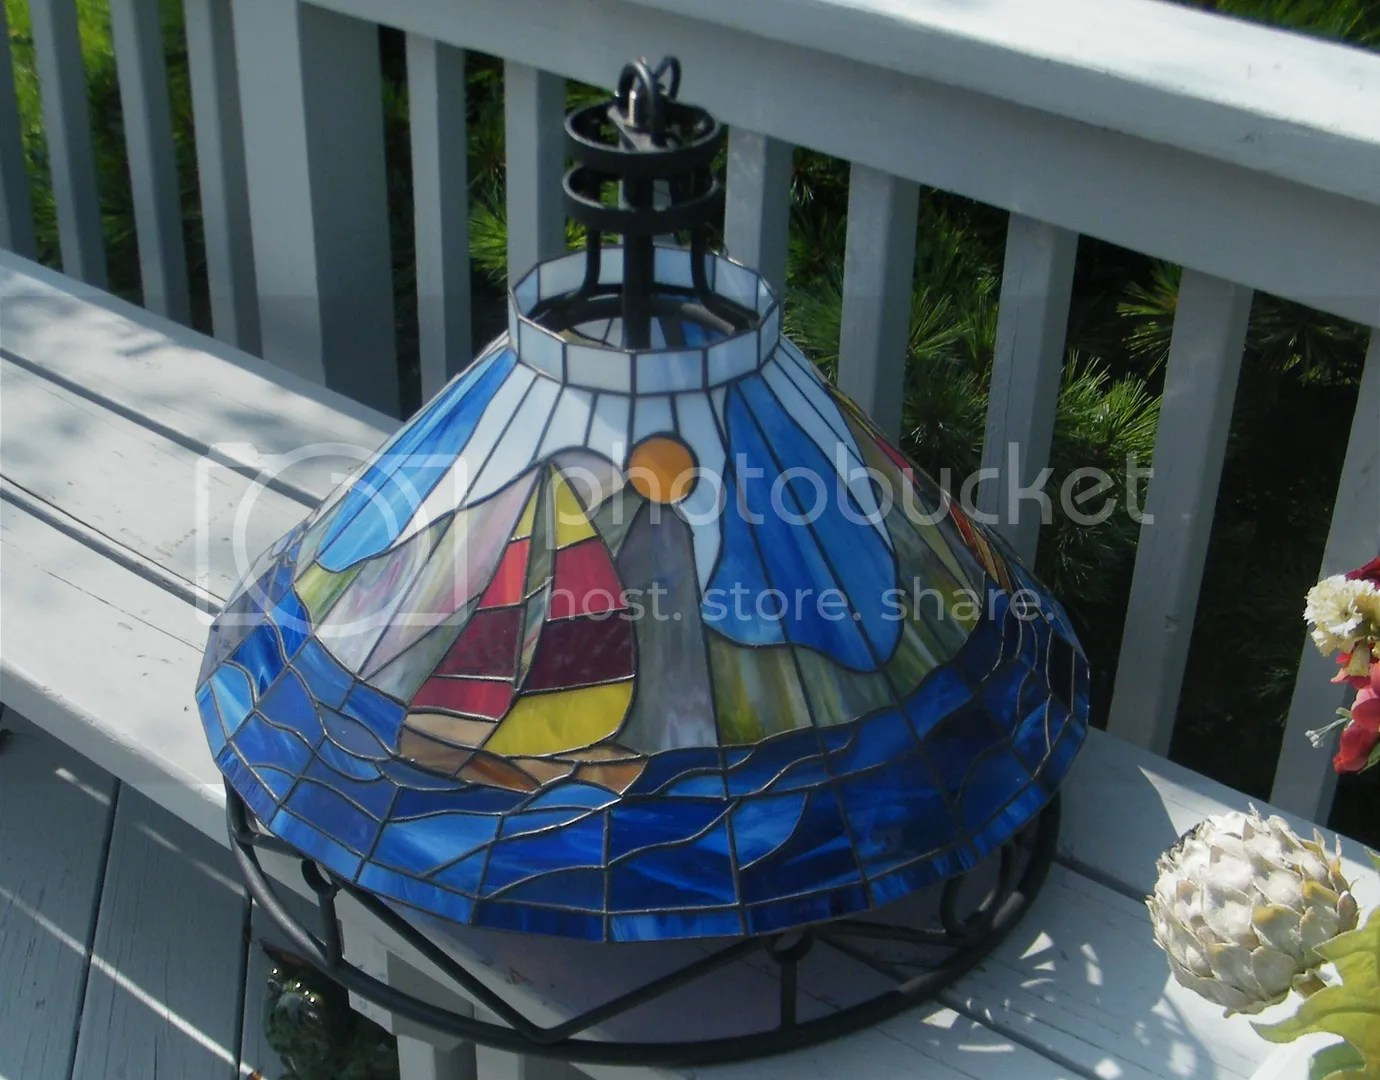 VINTAGE SLAG STAINED GLASS WROUGHT IRON SAIL BOAT HANGING CHANDELIER LAMP LIGHT